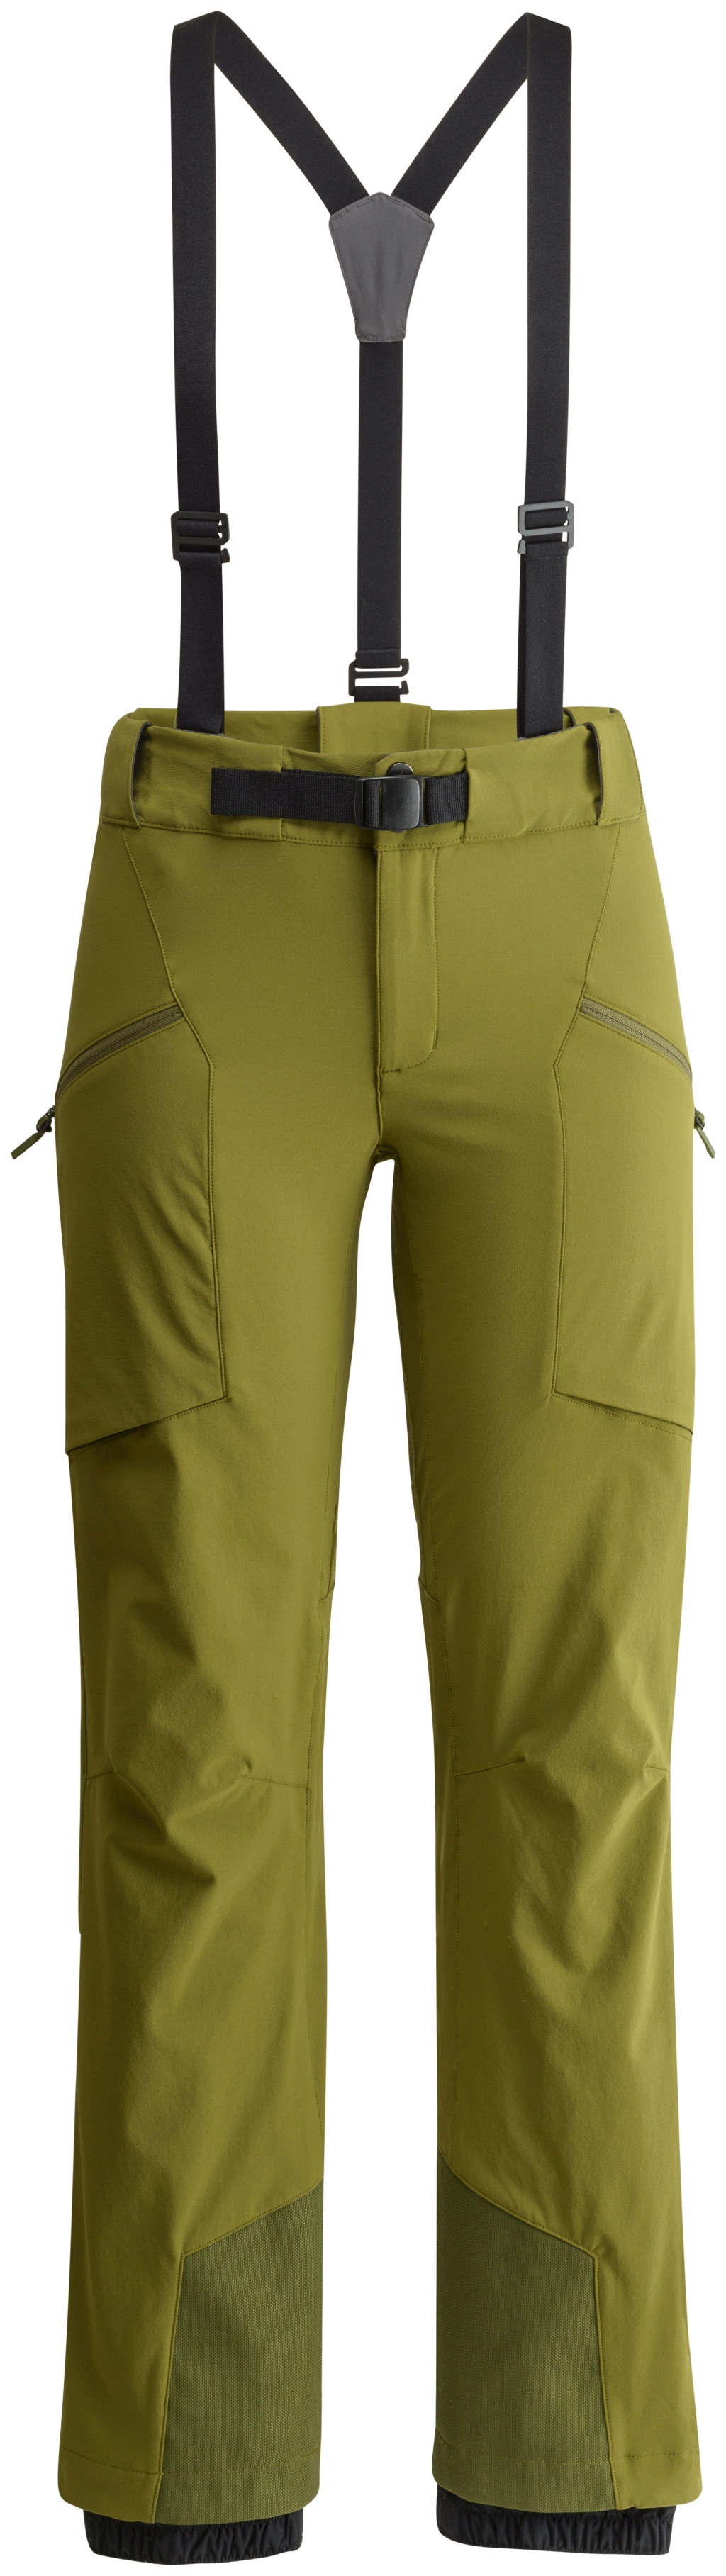 Black Diamond Dawn Patrol Ski Touring Pants Women's Sage-30